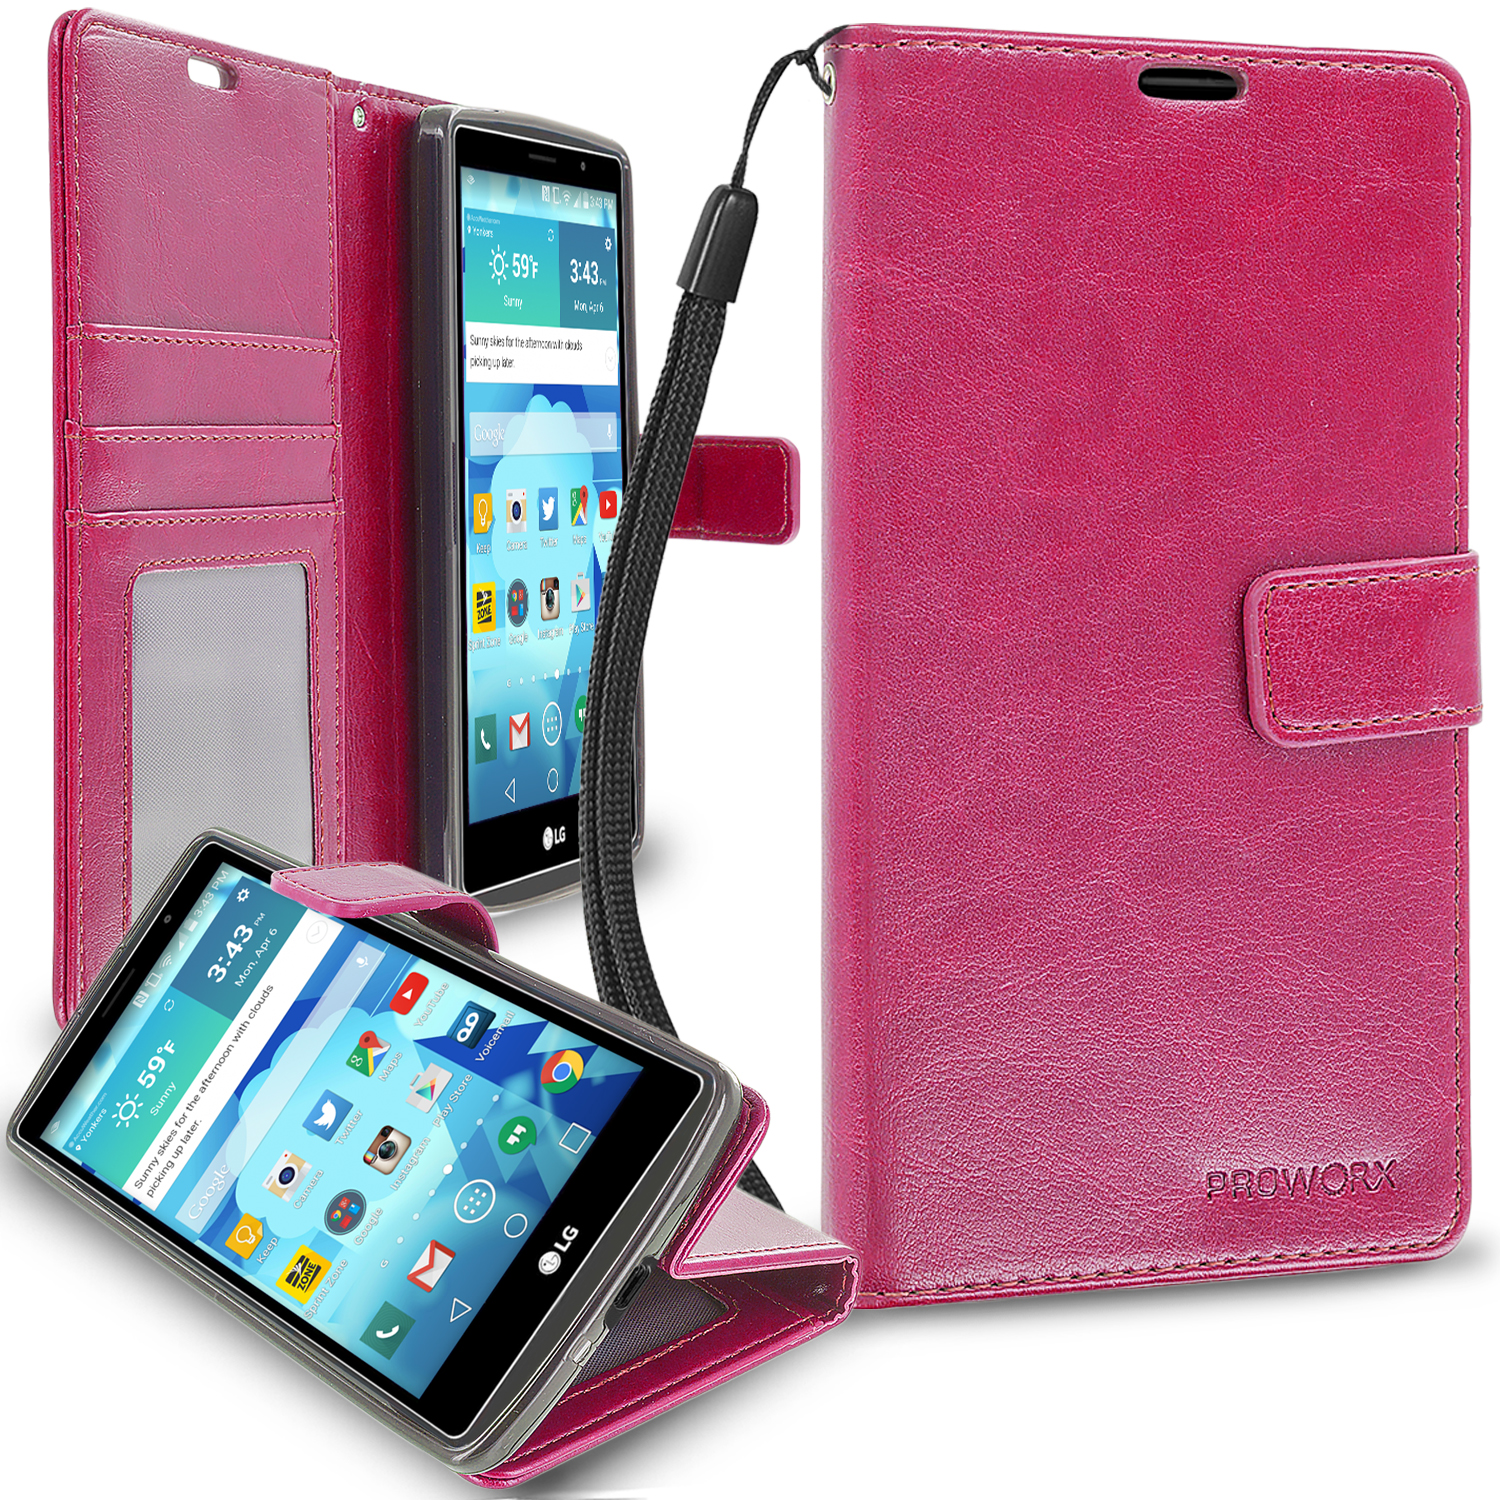 LG G Vista 2 Hot Pink ProWorx Wallet Case Luxury PU Leather Case Cover With Card Slots & Stand